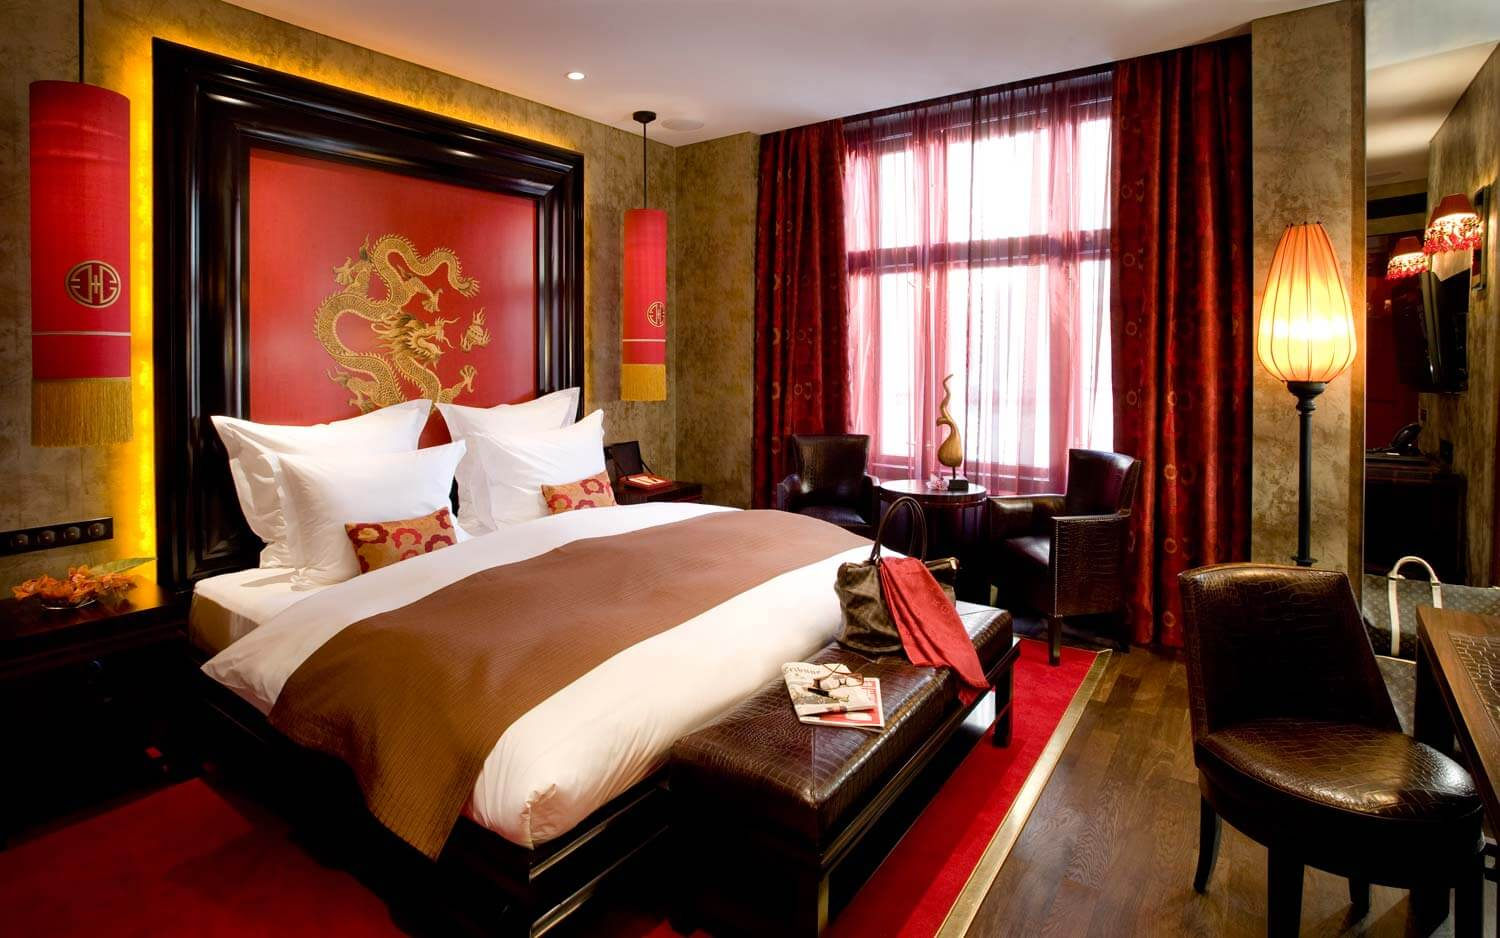 Buddha bar hotel in prague luxury 5 star hotel prague for 5 star hotels in prague